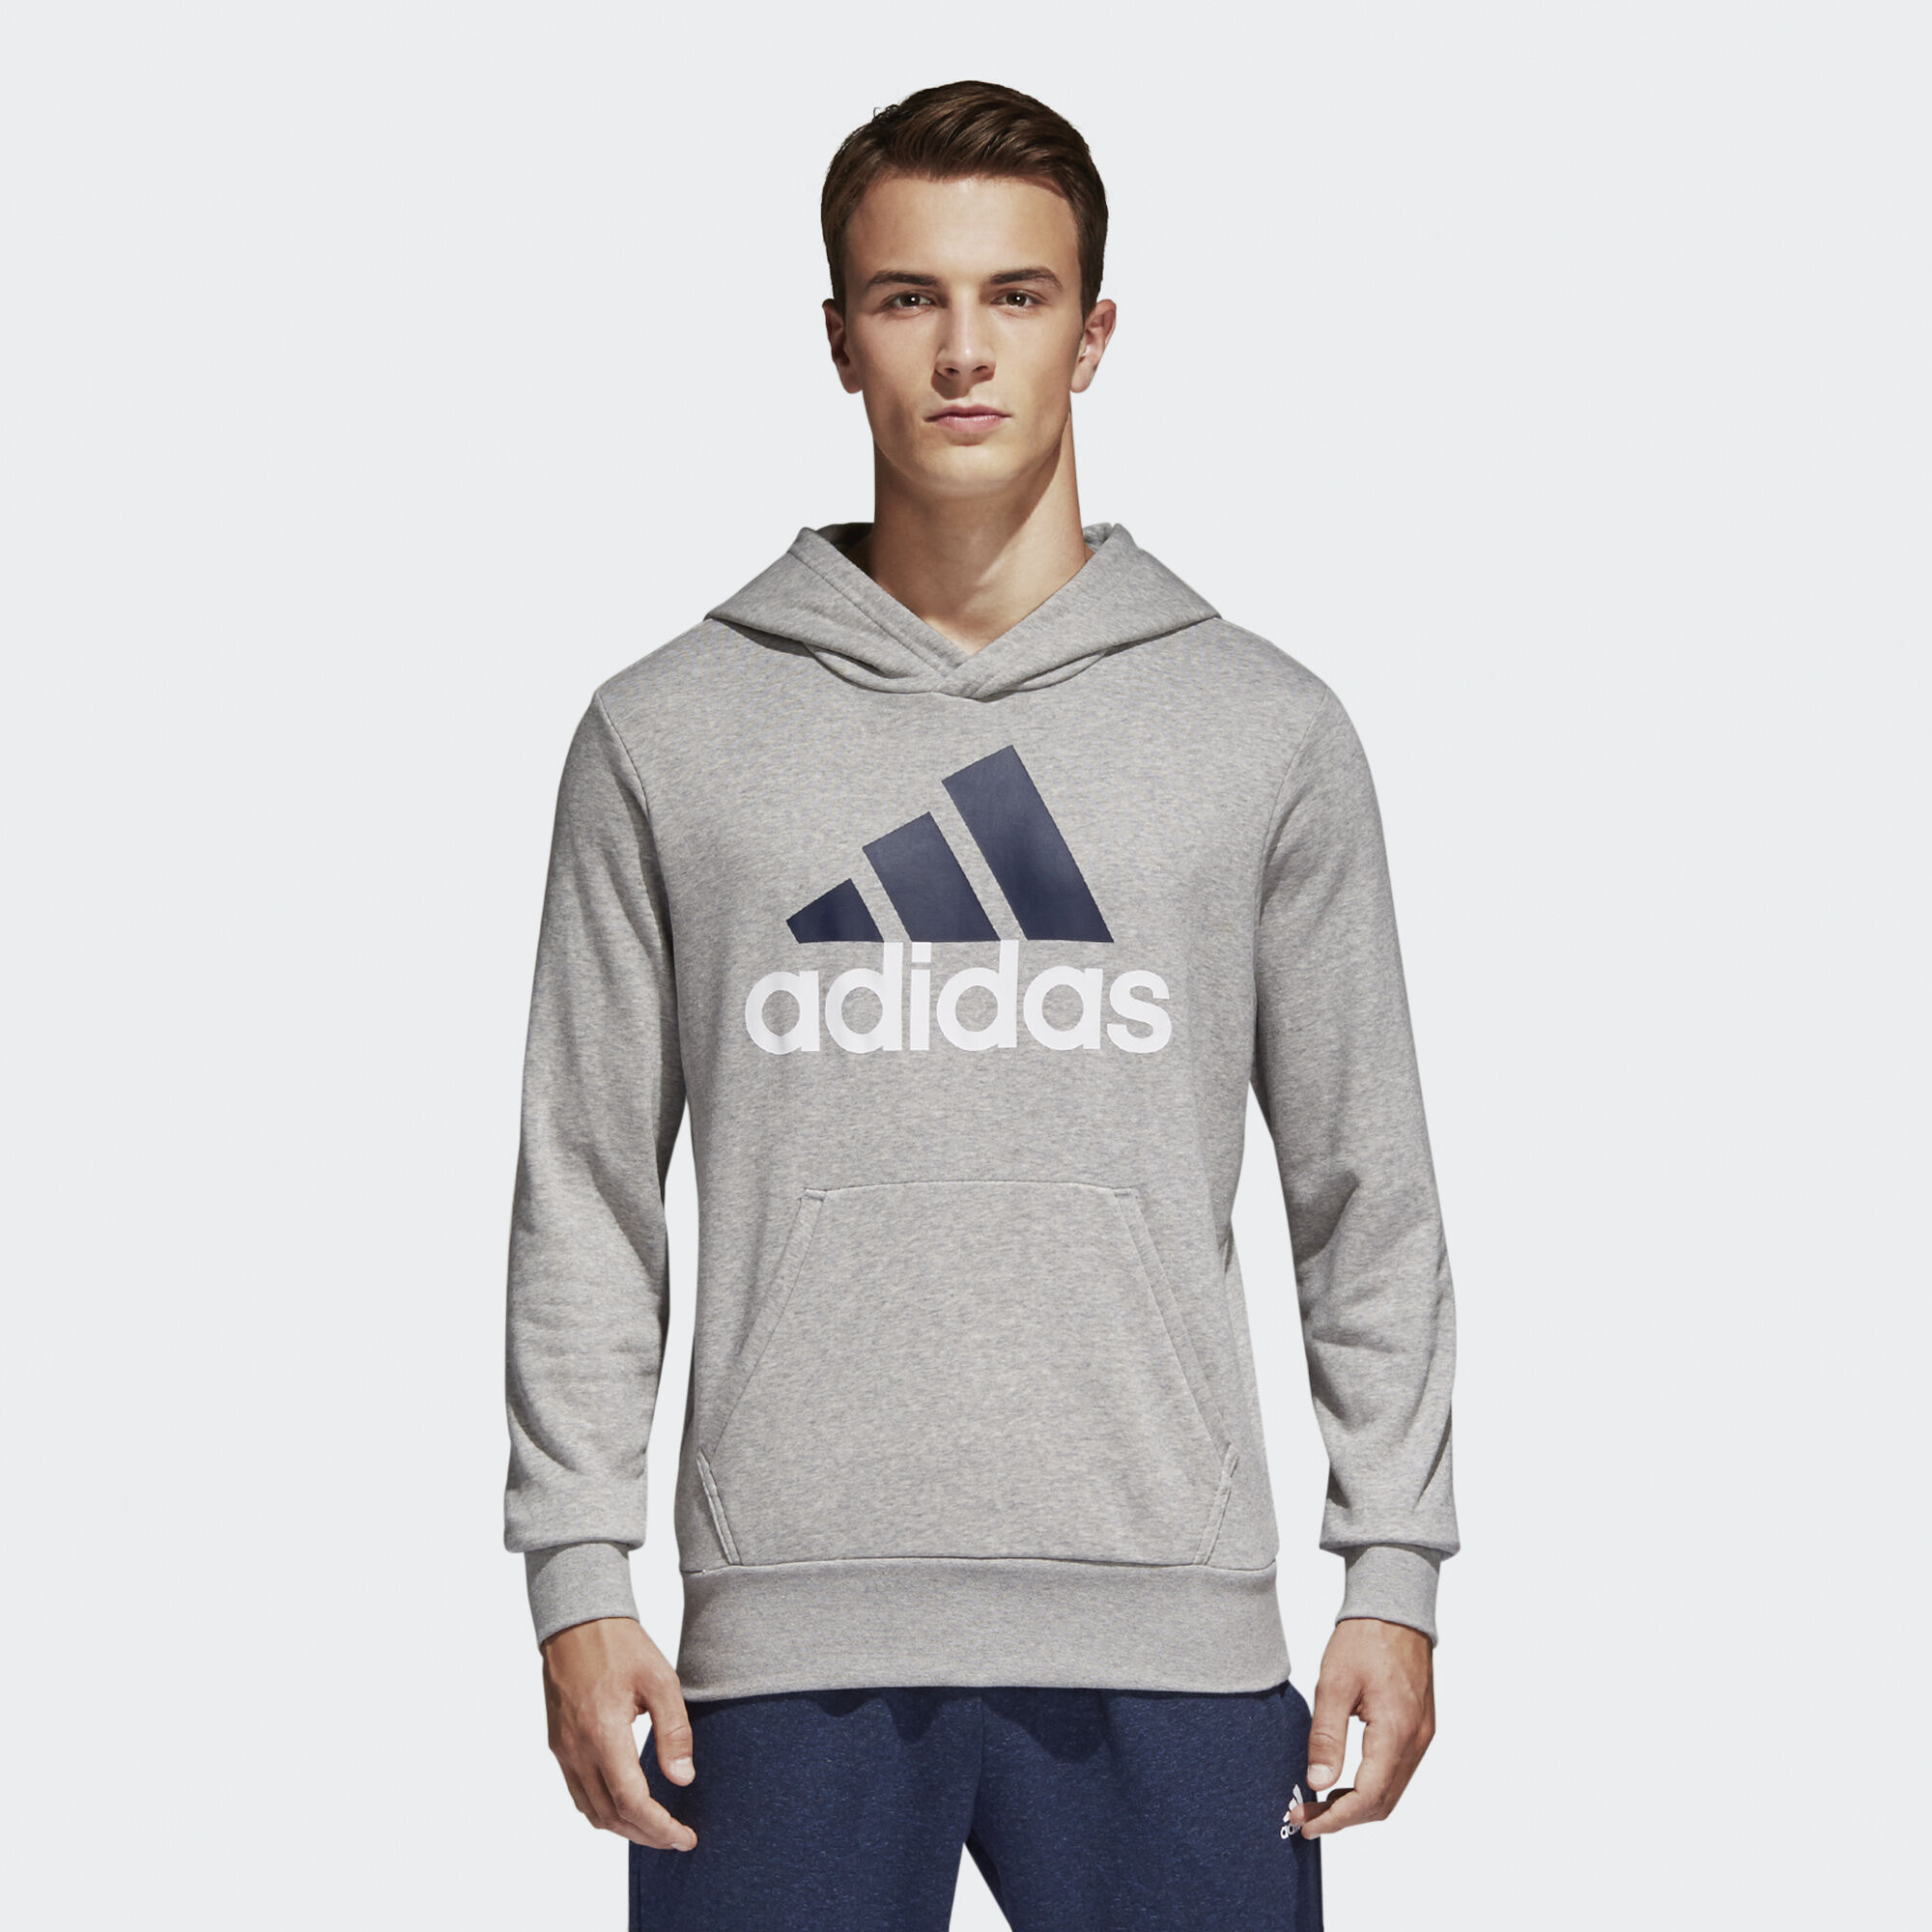 mens adidas hoodie sale,adidas spezial buy > OFF42% Free